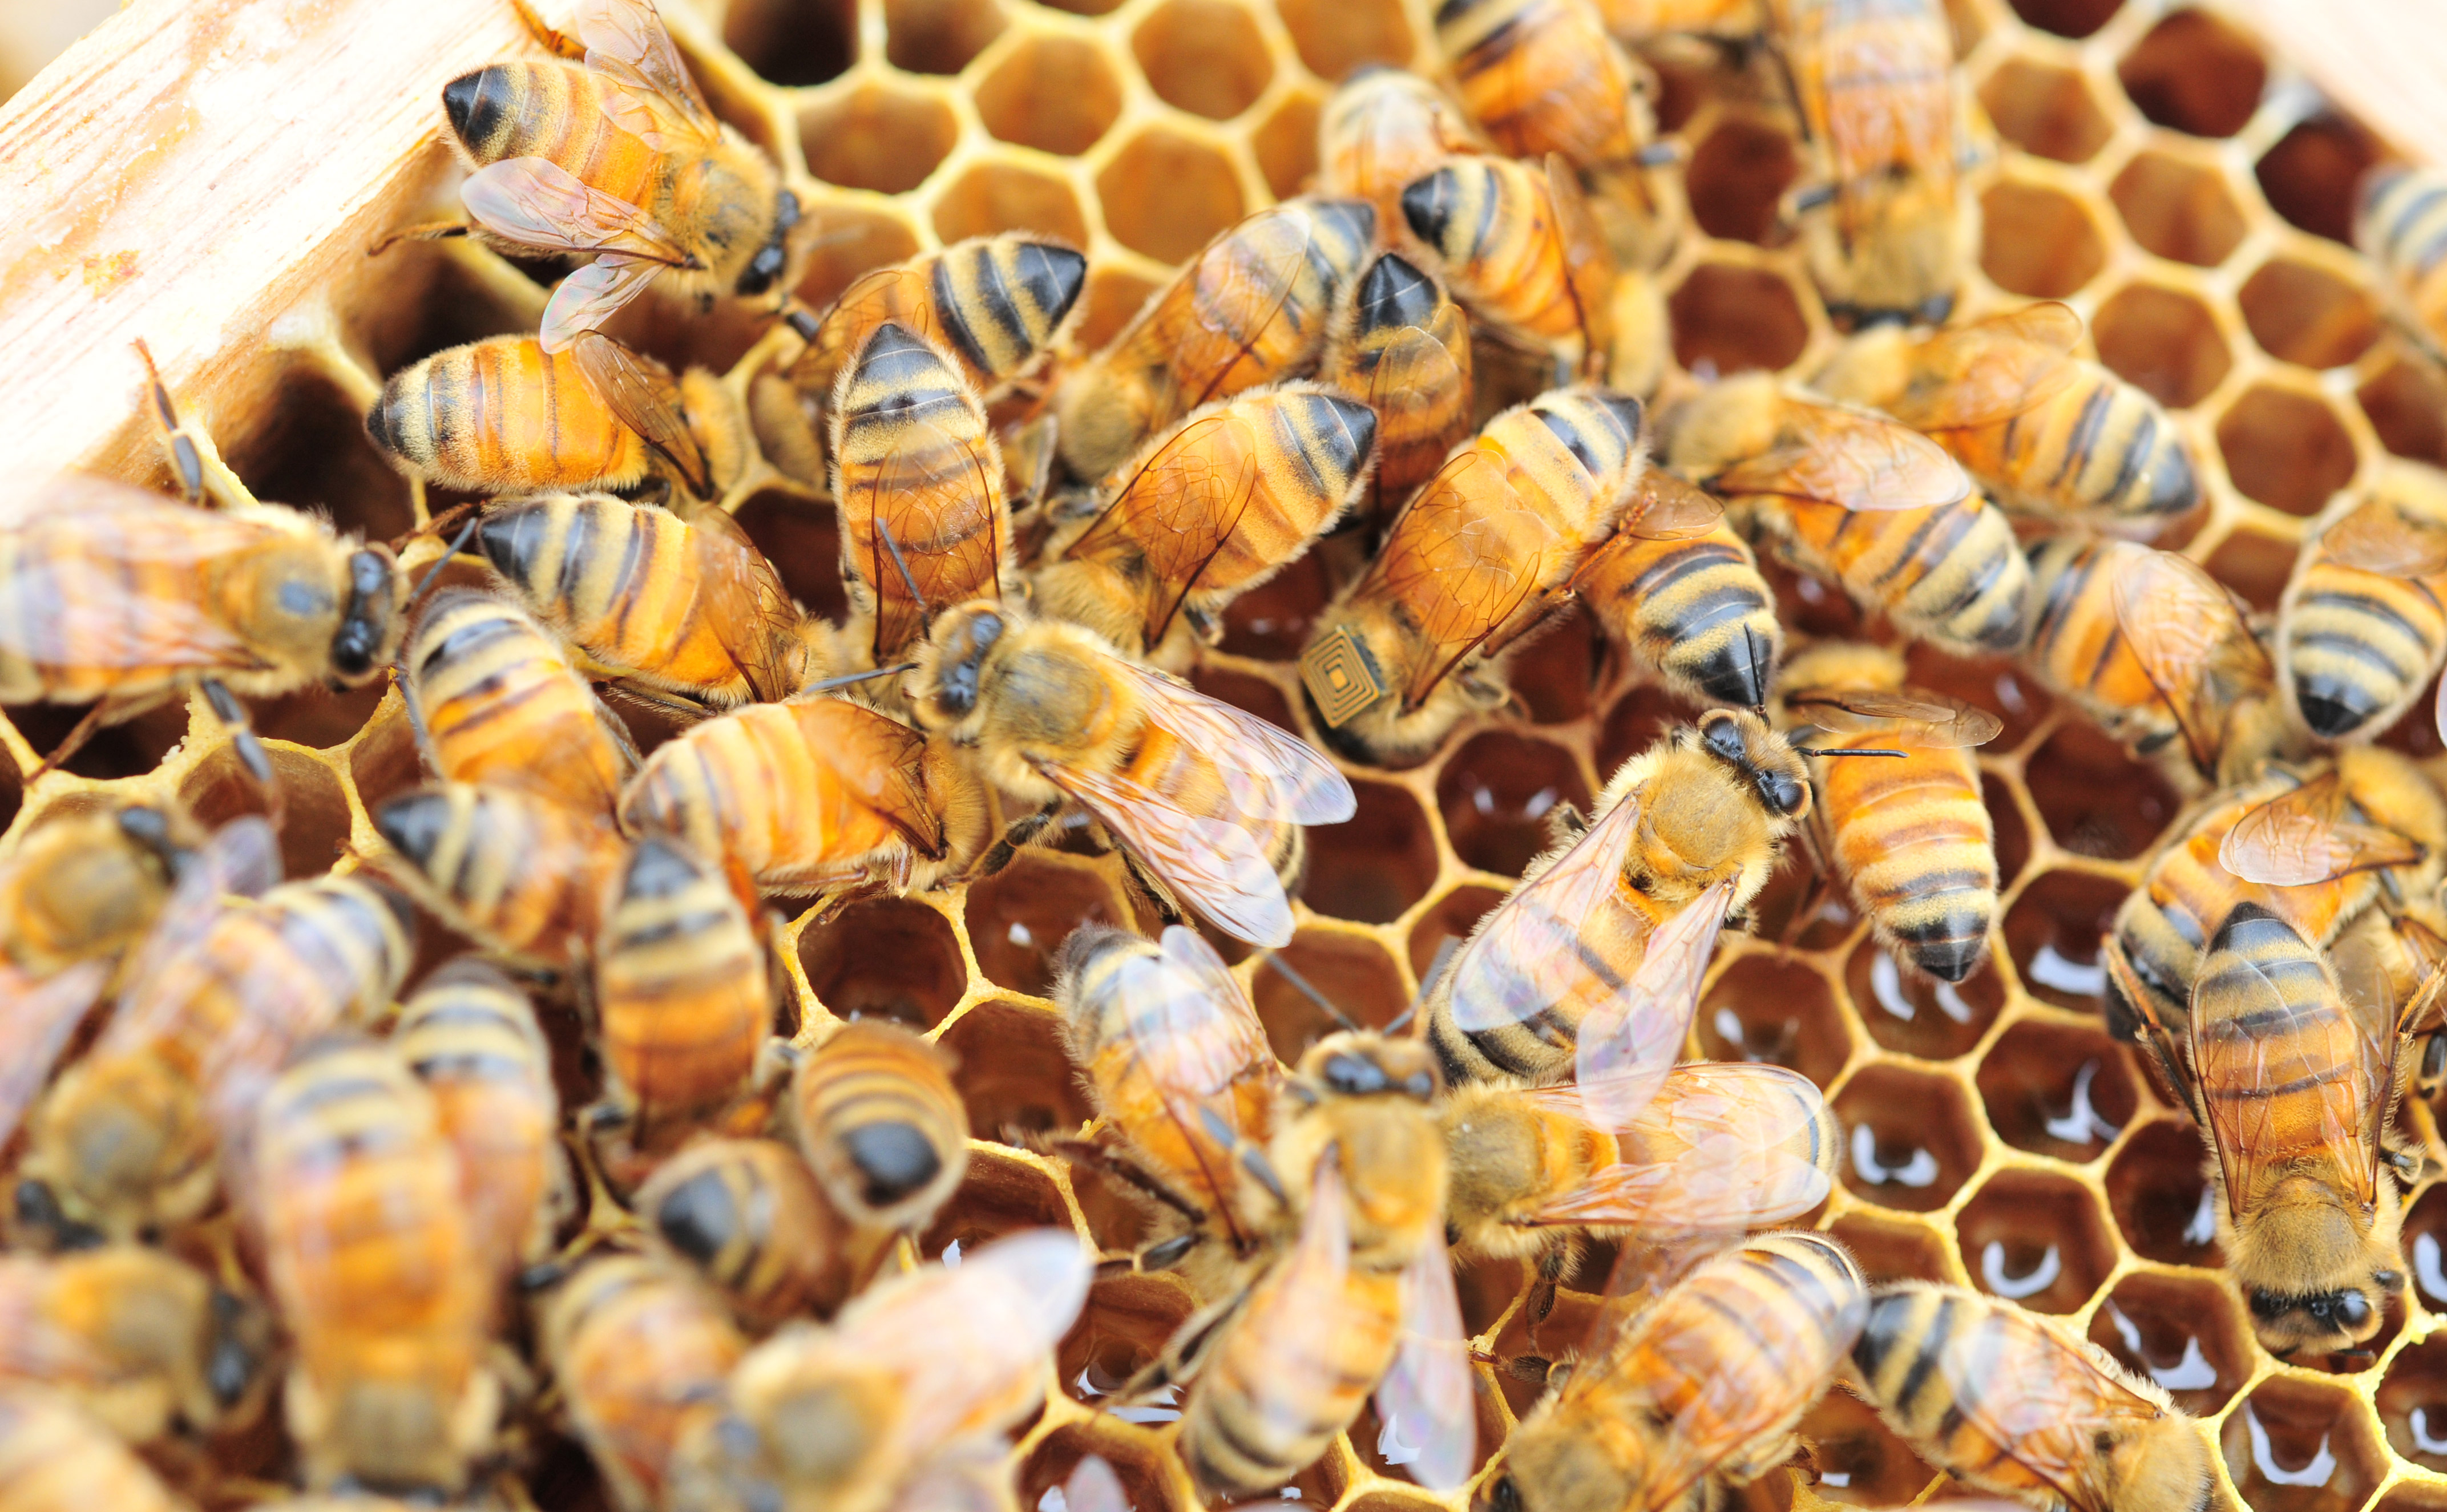 Honey bees fitted with sensors